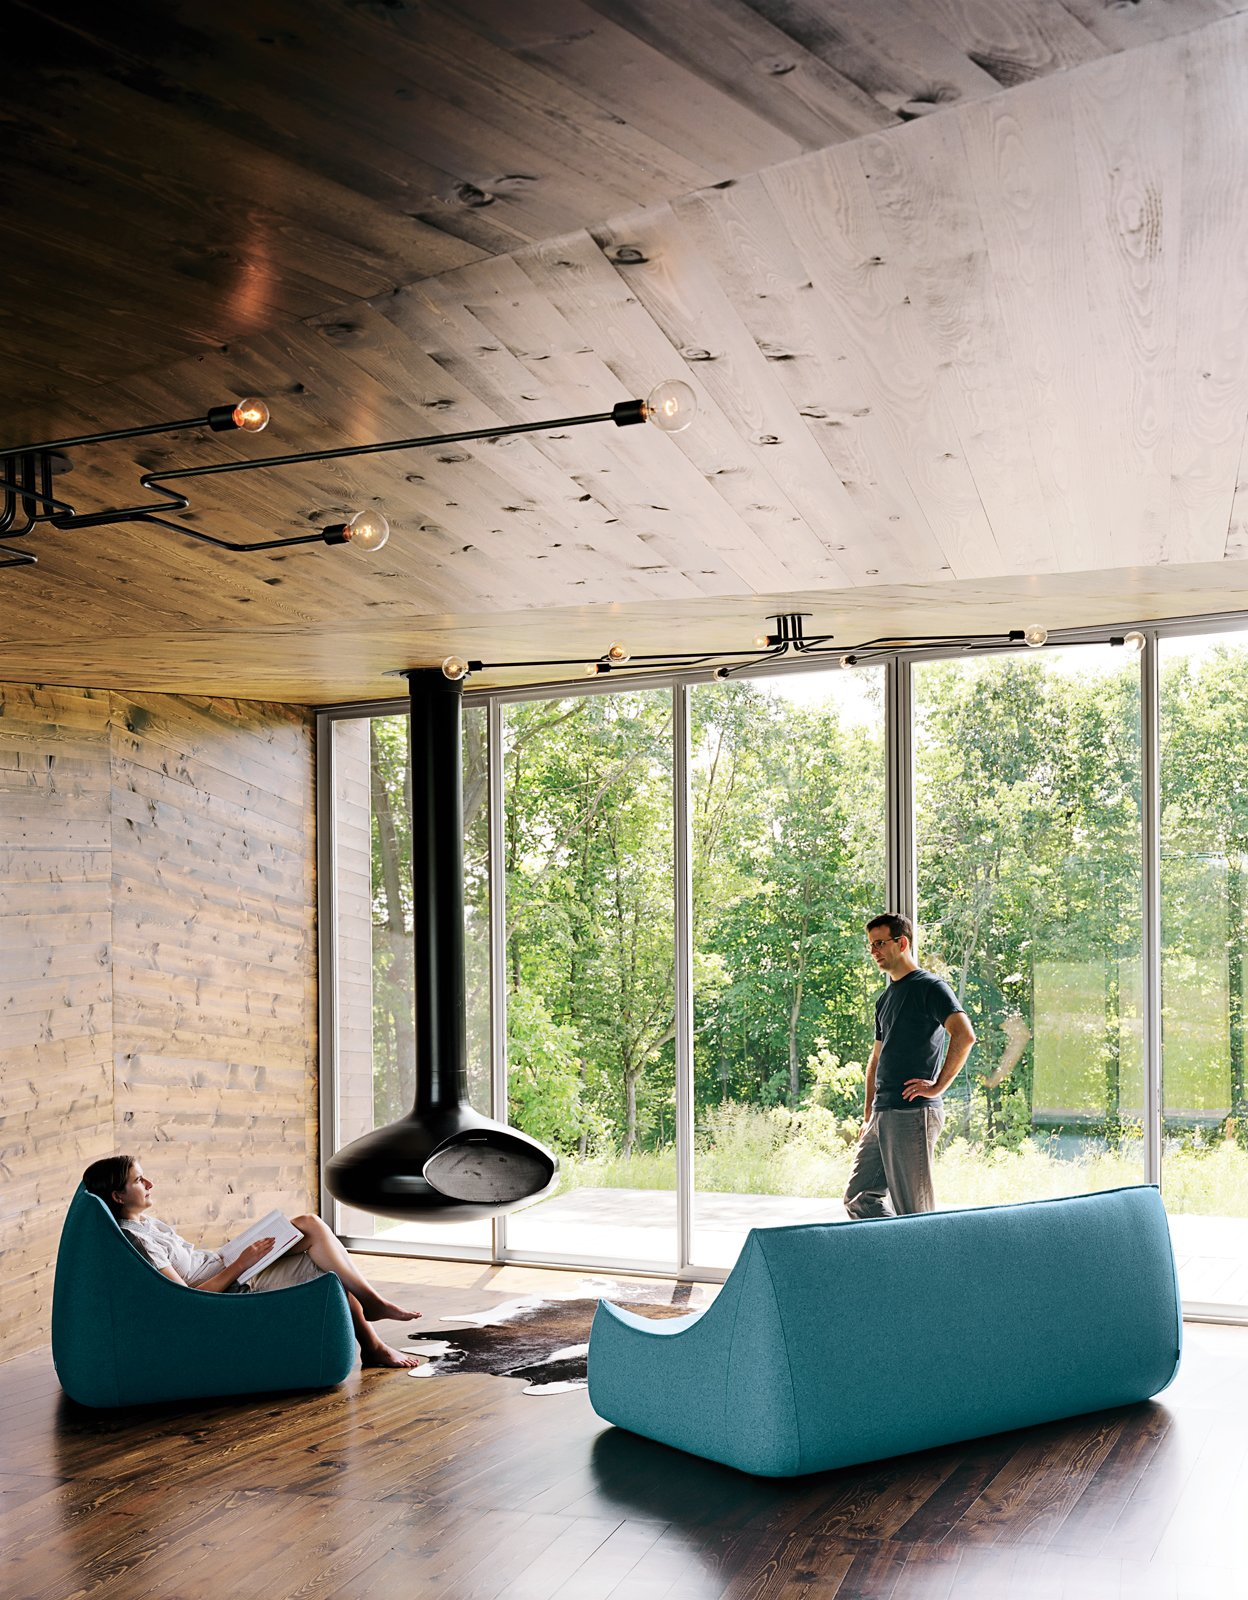 New Grass Roots  With its corrugated-aluminum exterior, X House in Hennepin, Illinois, was built to resemble rural silos. The inside, however, features rich wood paneling and spare furnishings. From floor-to-ceiling windows, the residents have a view of the surrounding grassland.